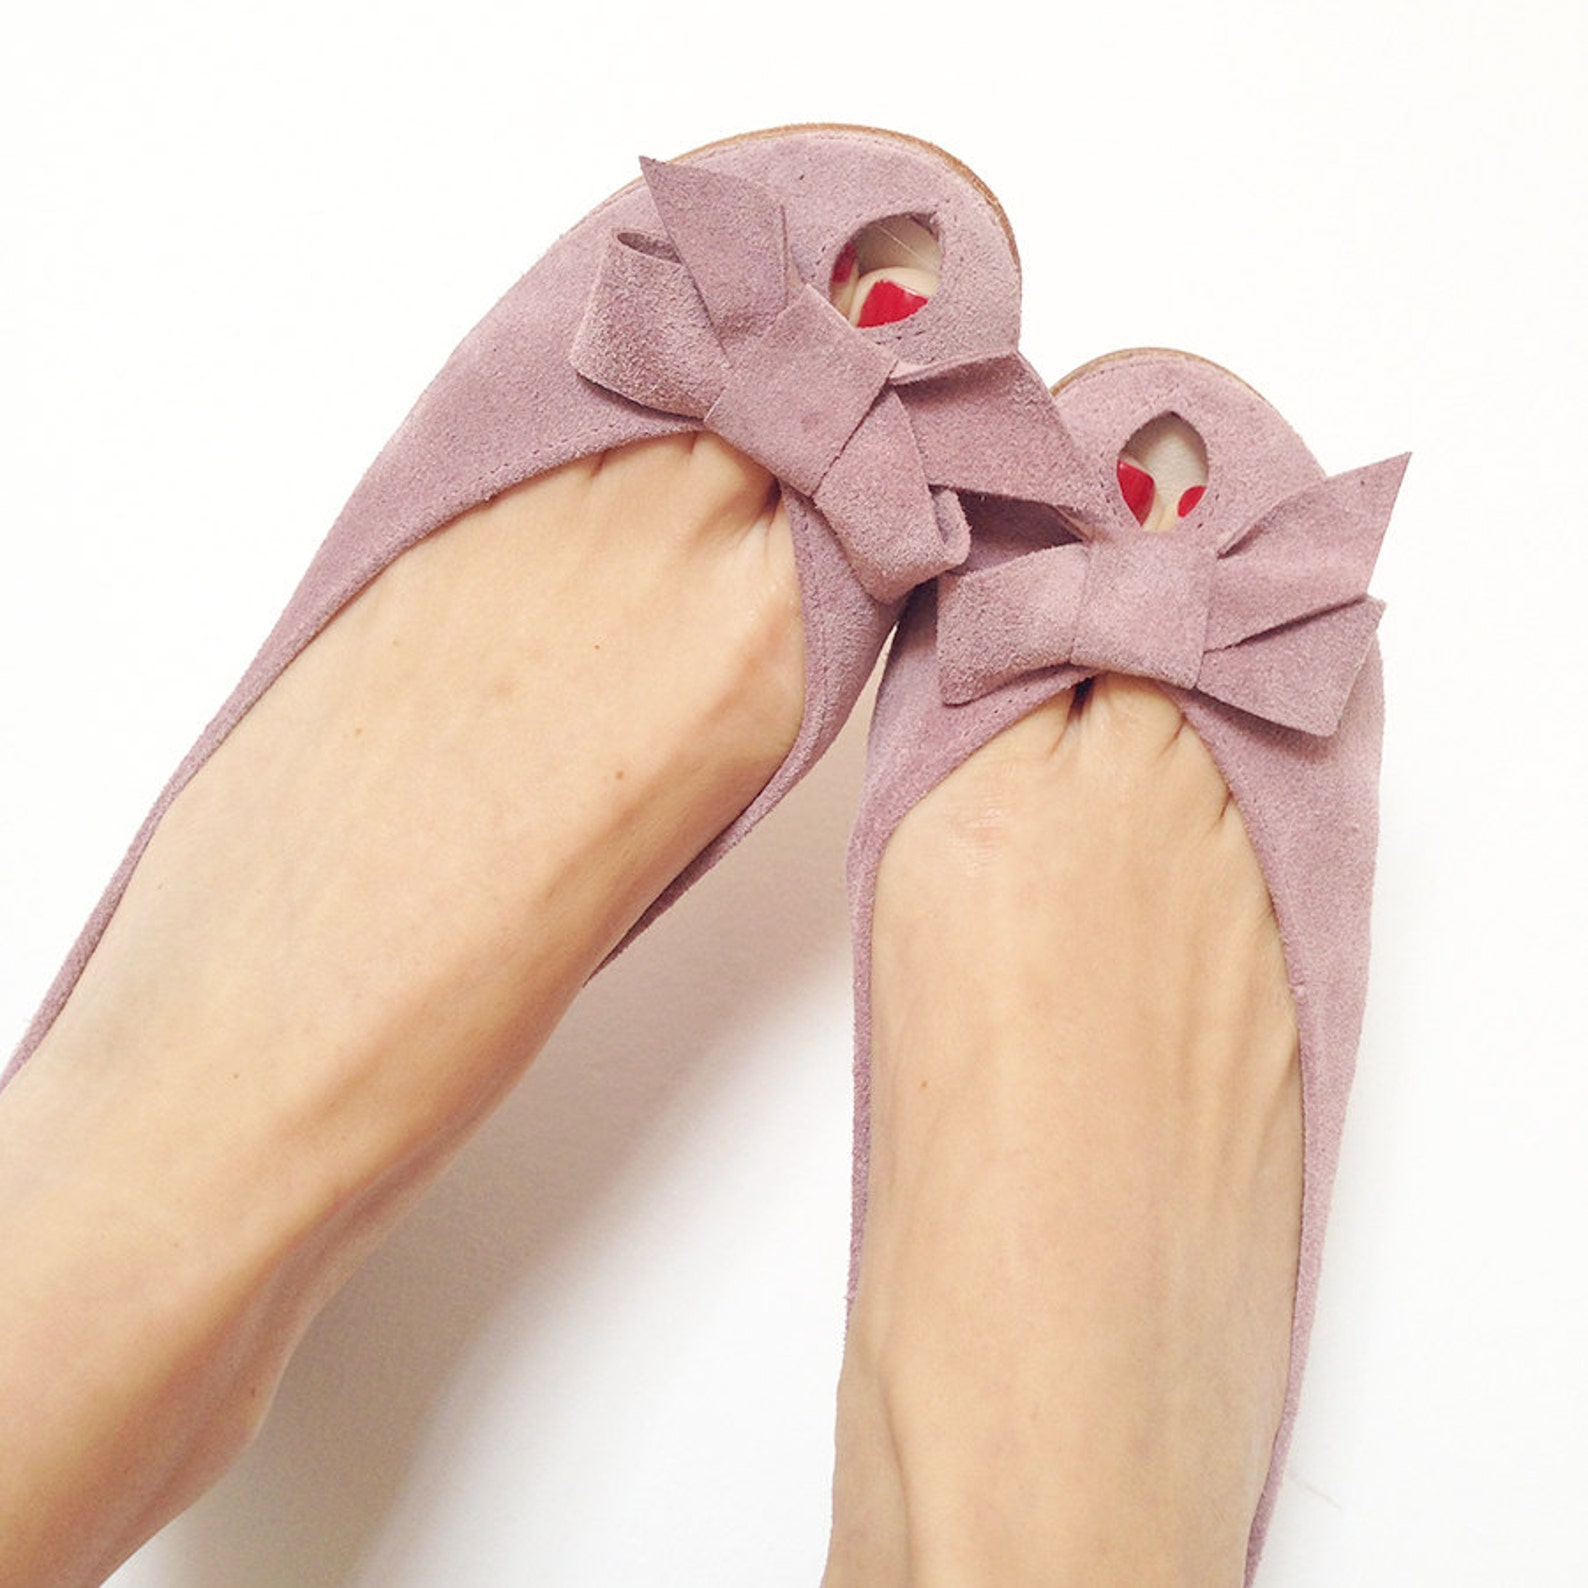 ballet flats shoes. women shoes. leather shoes. handmade peep toe. blush shoes. rose smoke shoes. bridal shoes with bow. rose we